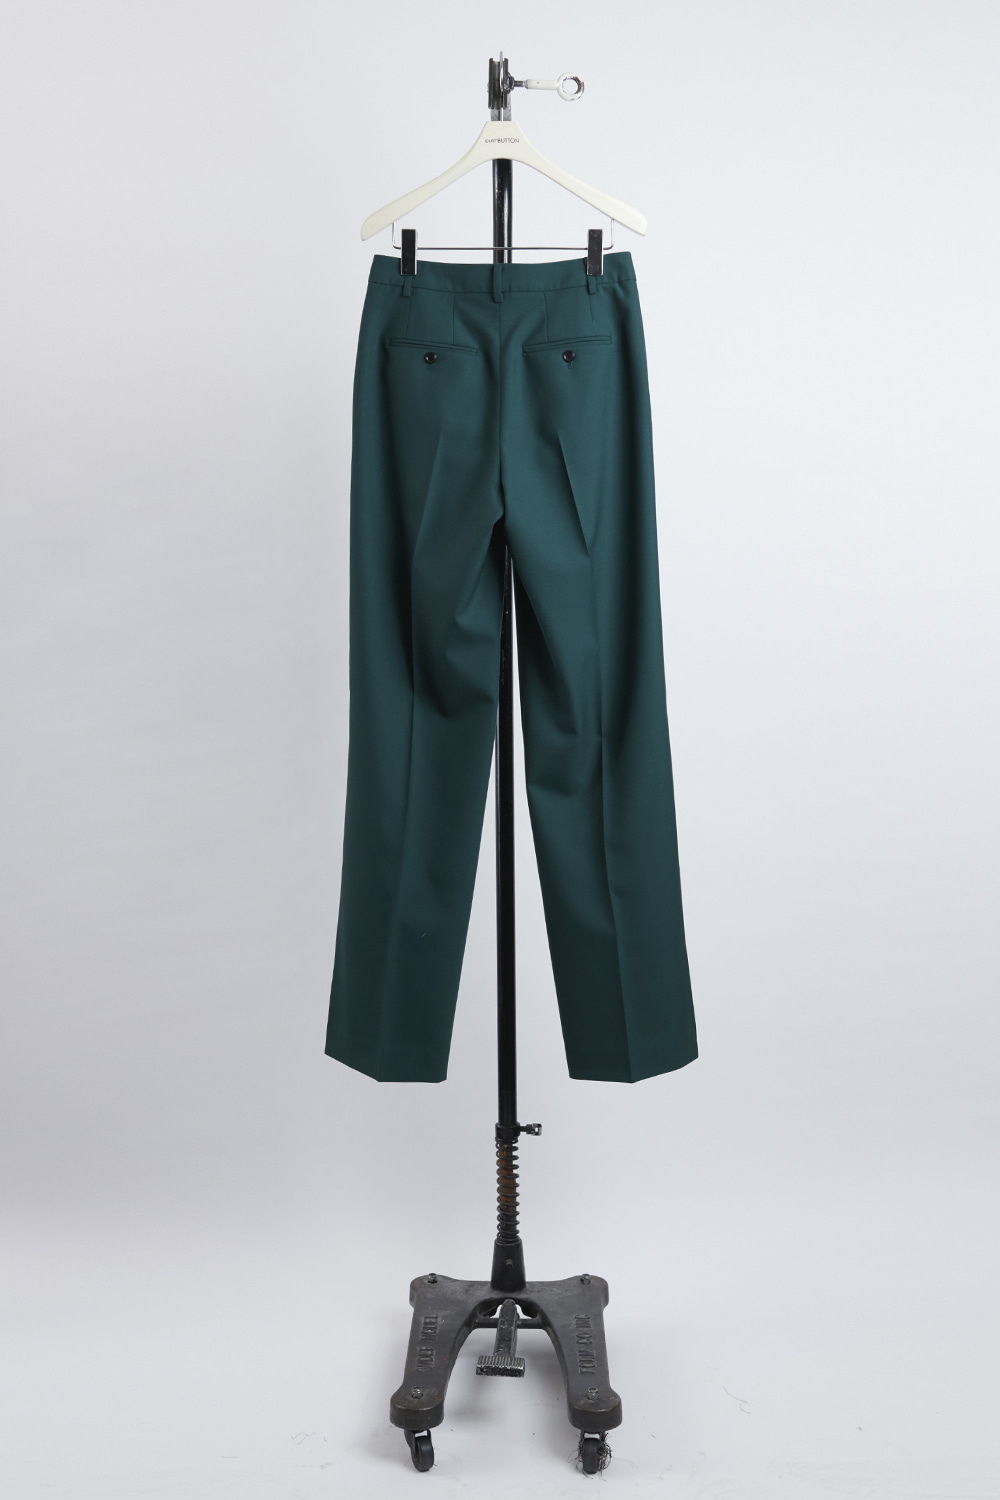 HS21 GREEN SLIT HEM TROUSERS